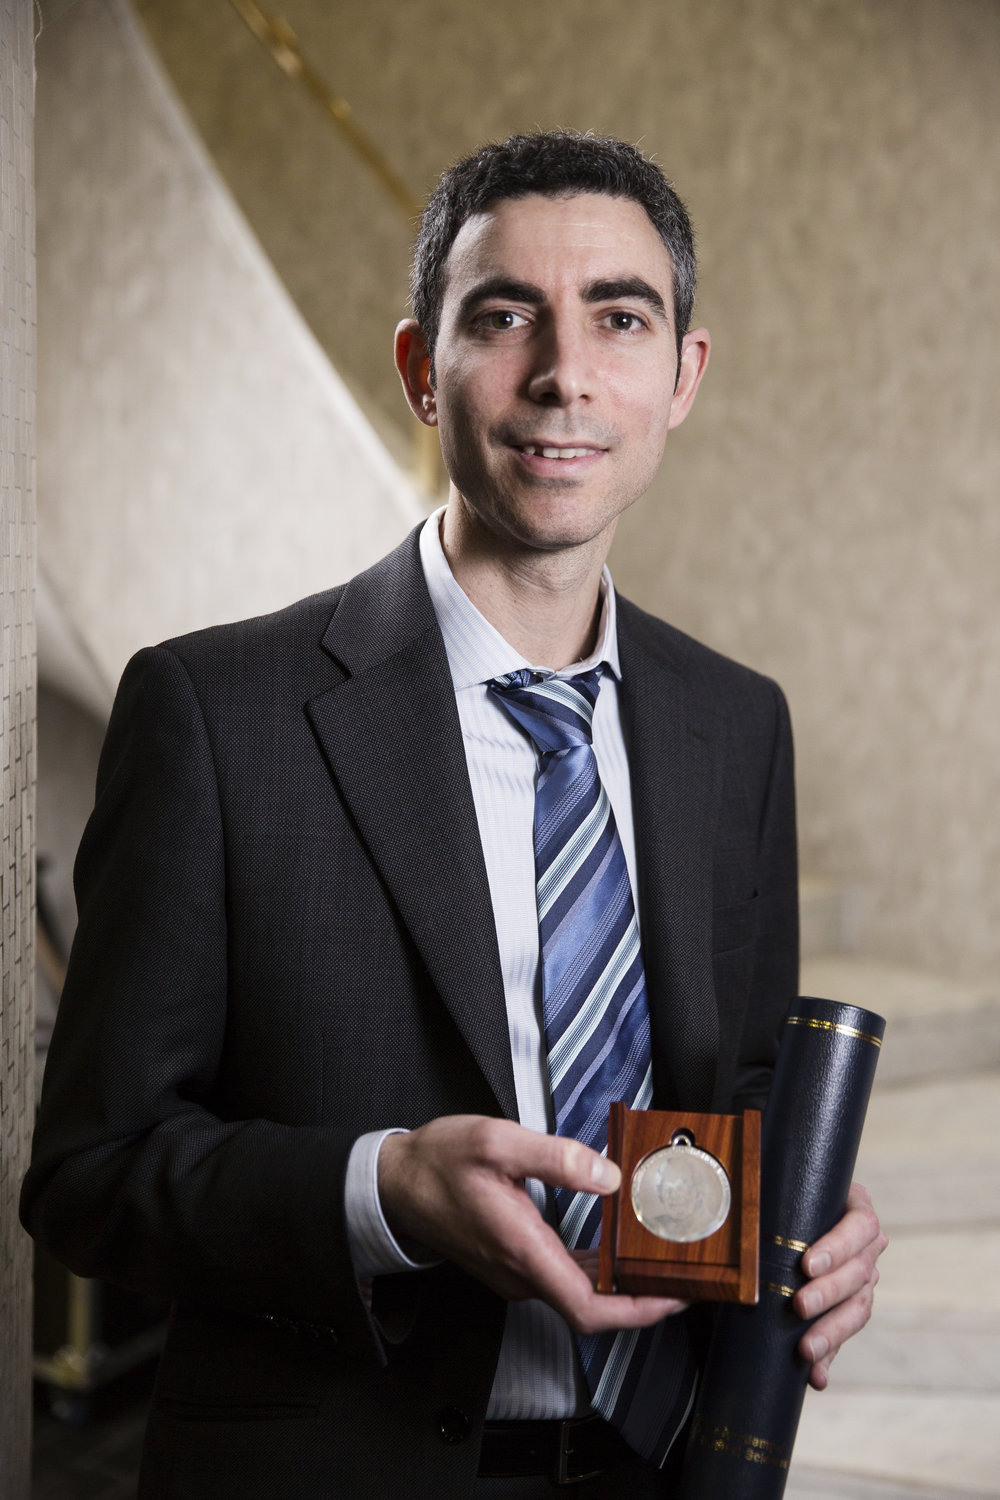 The 2015 Medal Winner, Dr Nitzan Rosenfeld